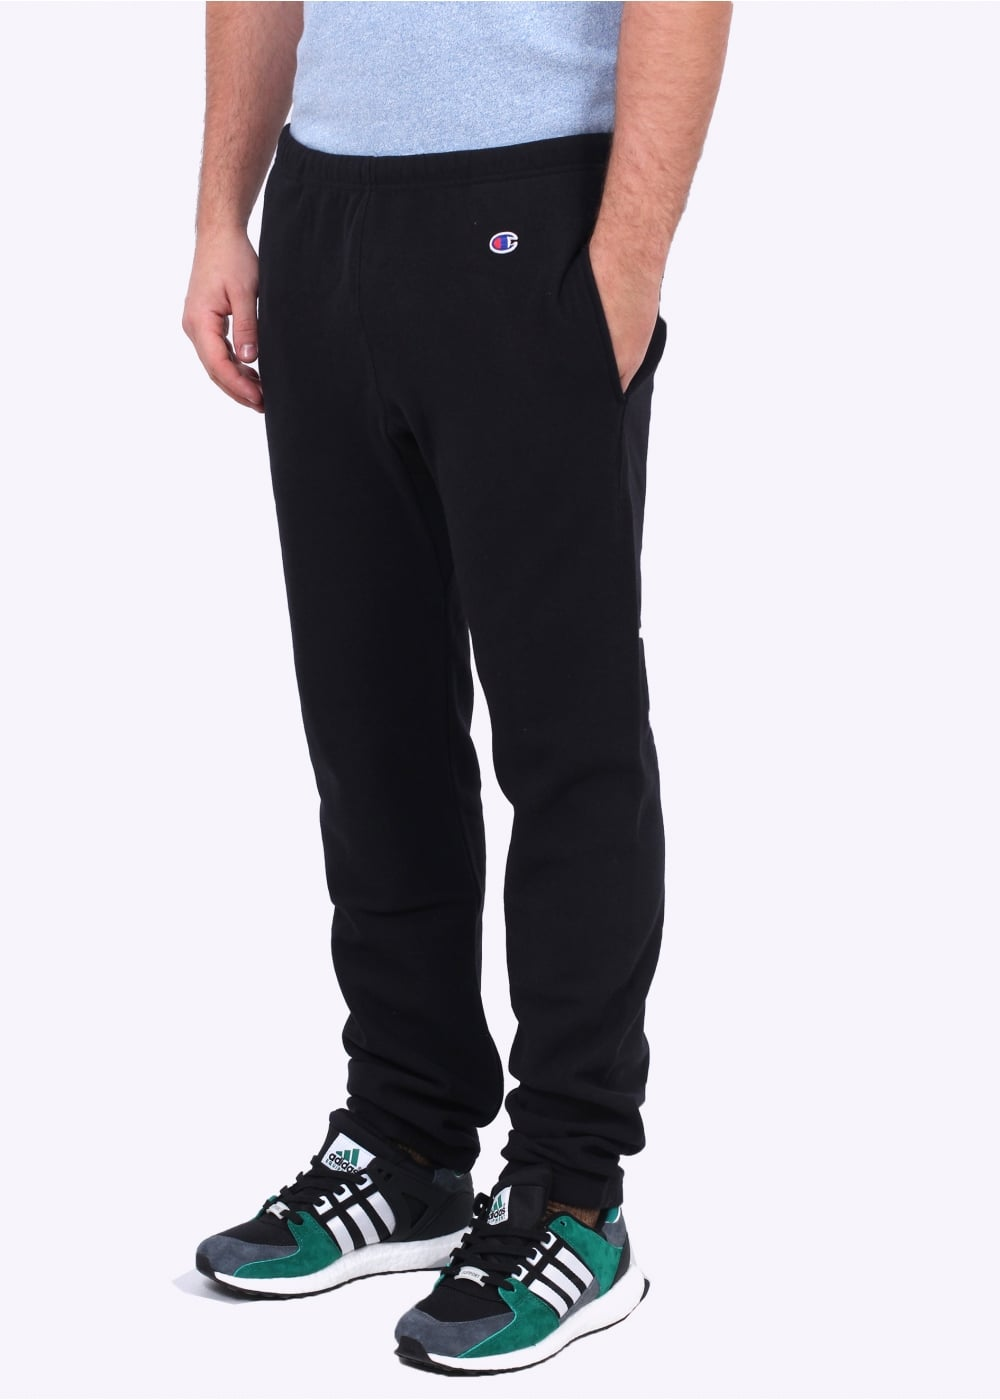 Mens Elastic Cuff Pants Champion Outlet With Paypal Order Online o5hxzQvS